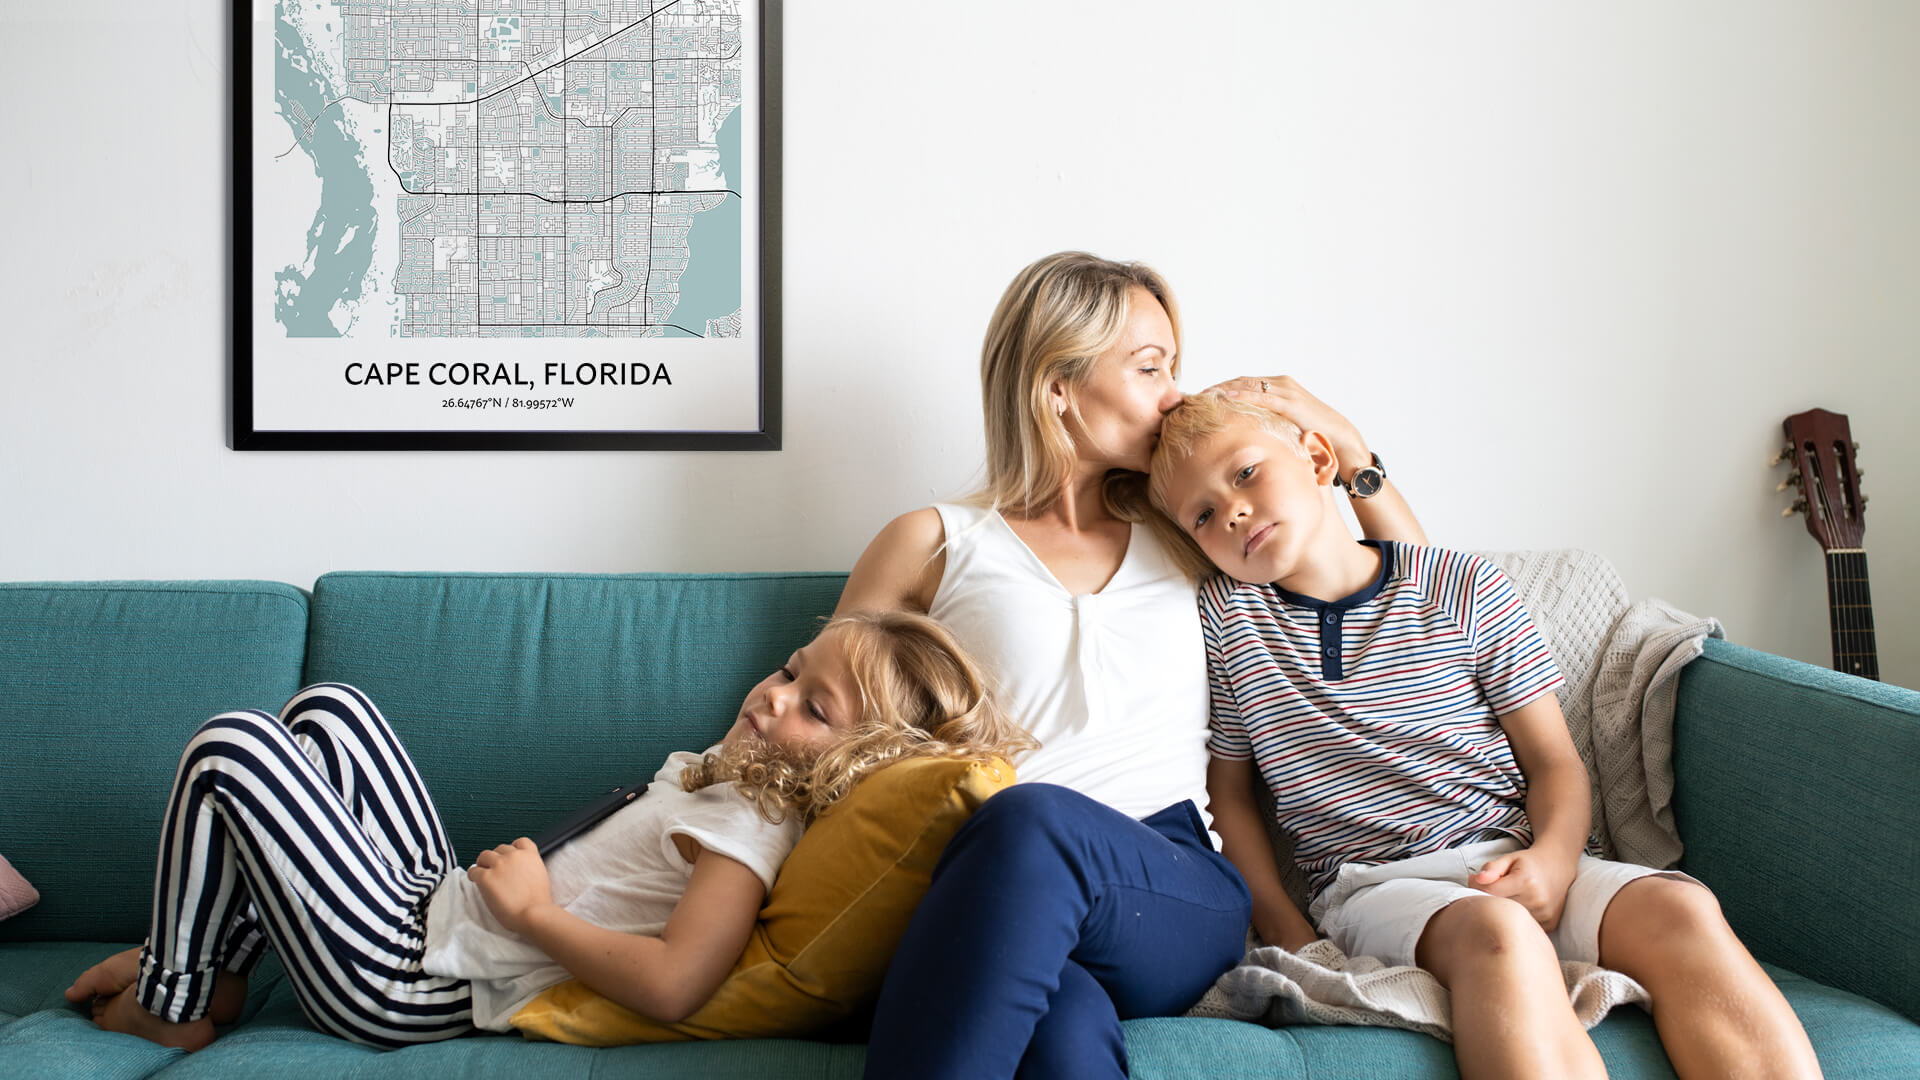 Cape Coral map poster